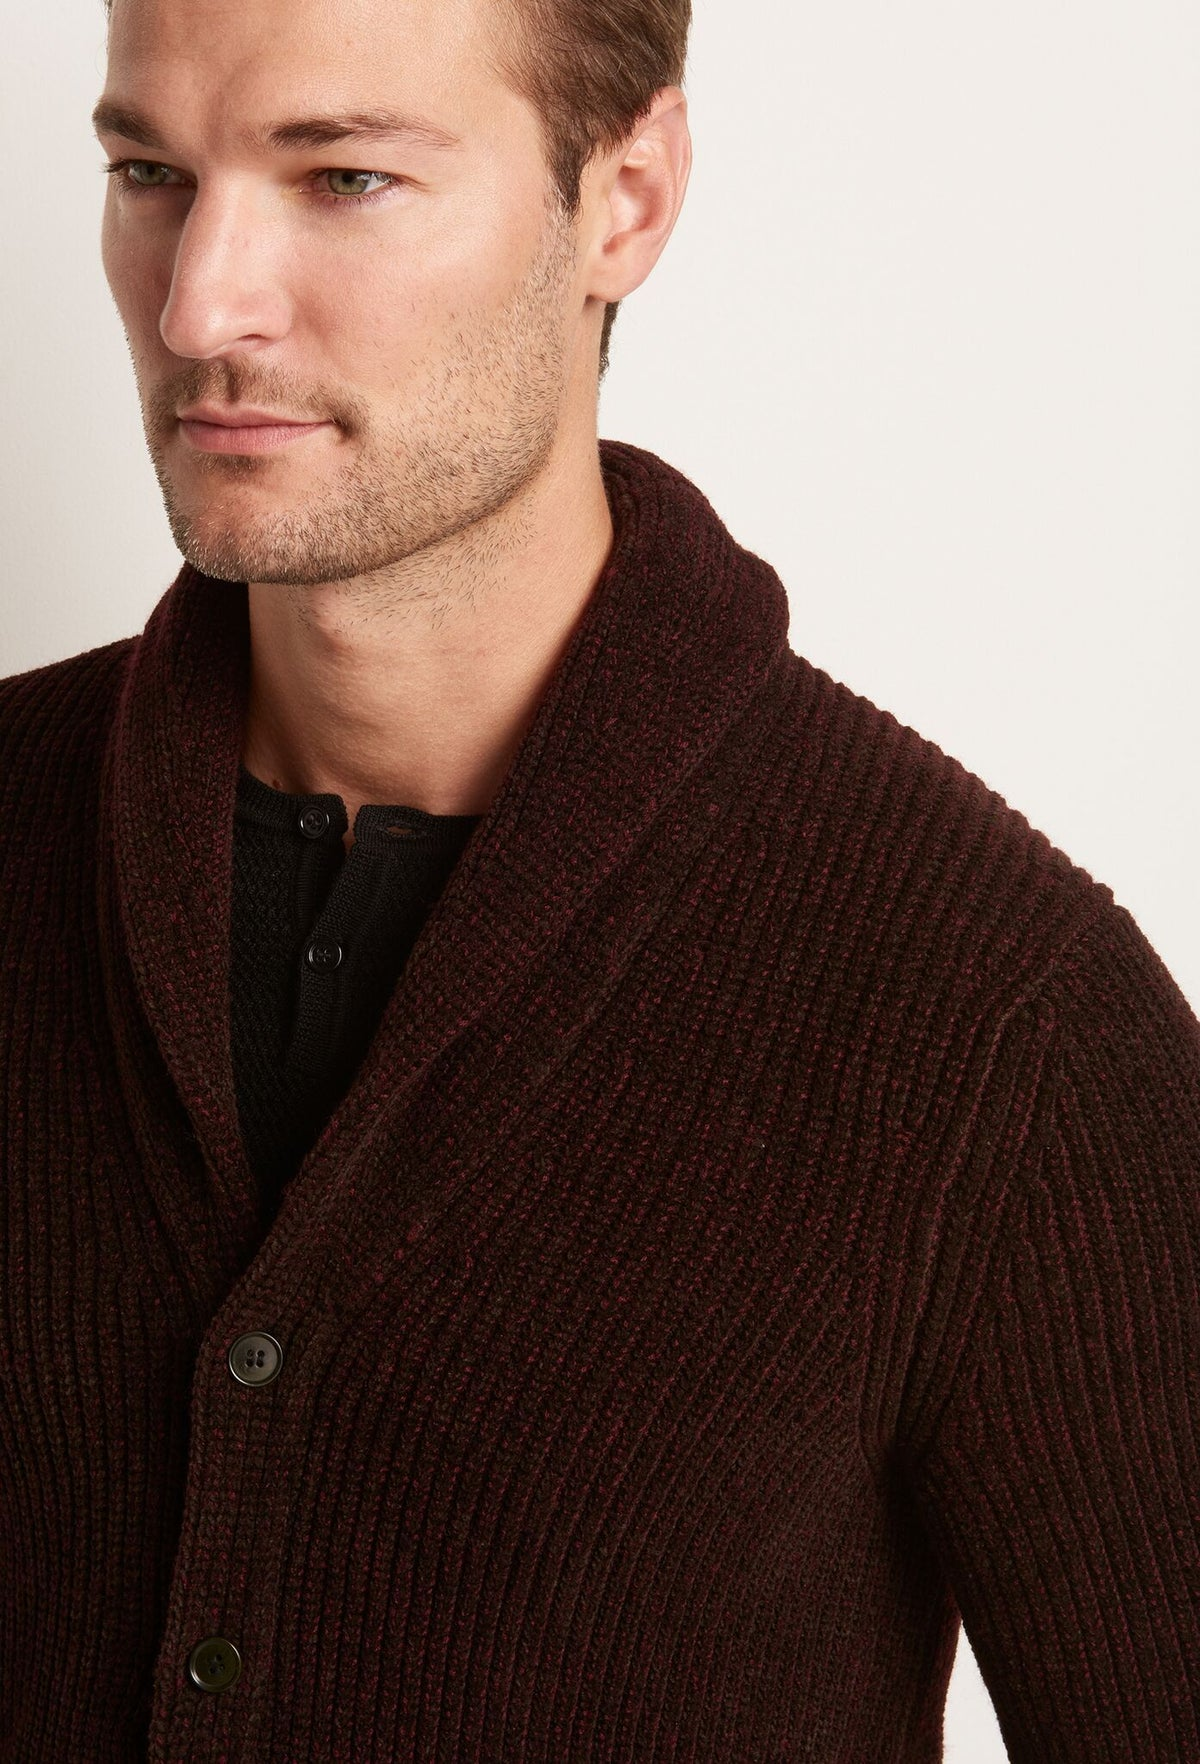 ZACHARY-PRELL-Quincy-SweatersModern-Menswear-New-Dress-Code